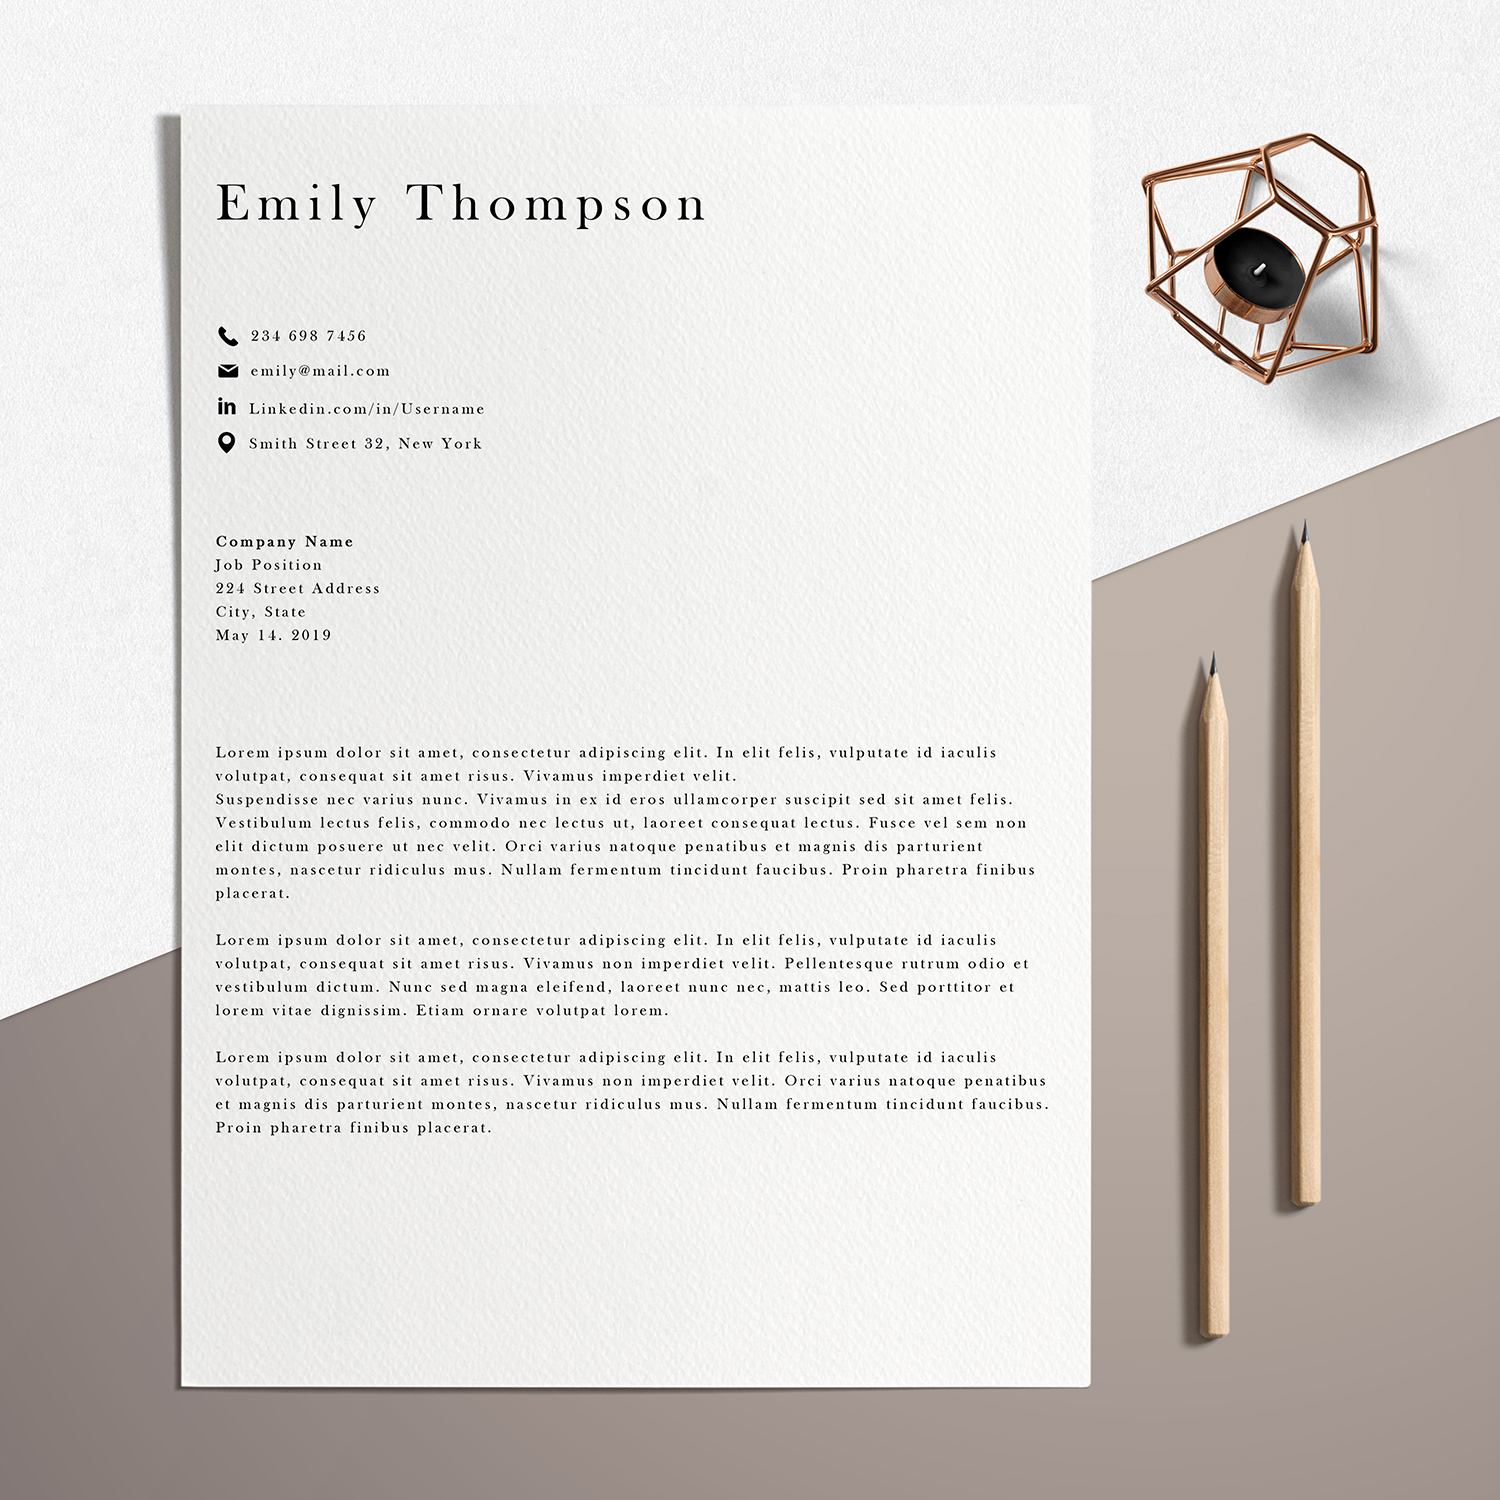 Resume Template | Photoshop CV Template - Emily example image 4